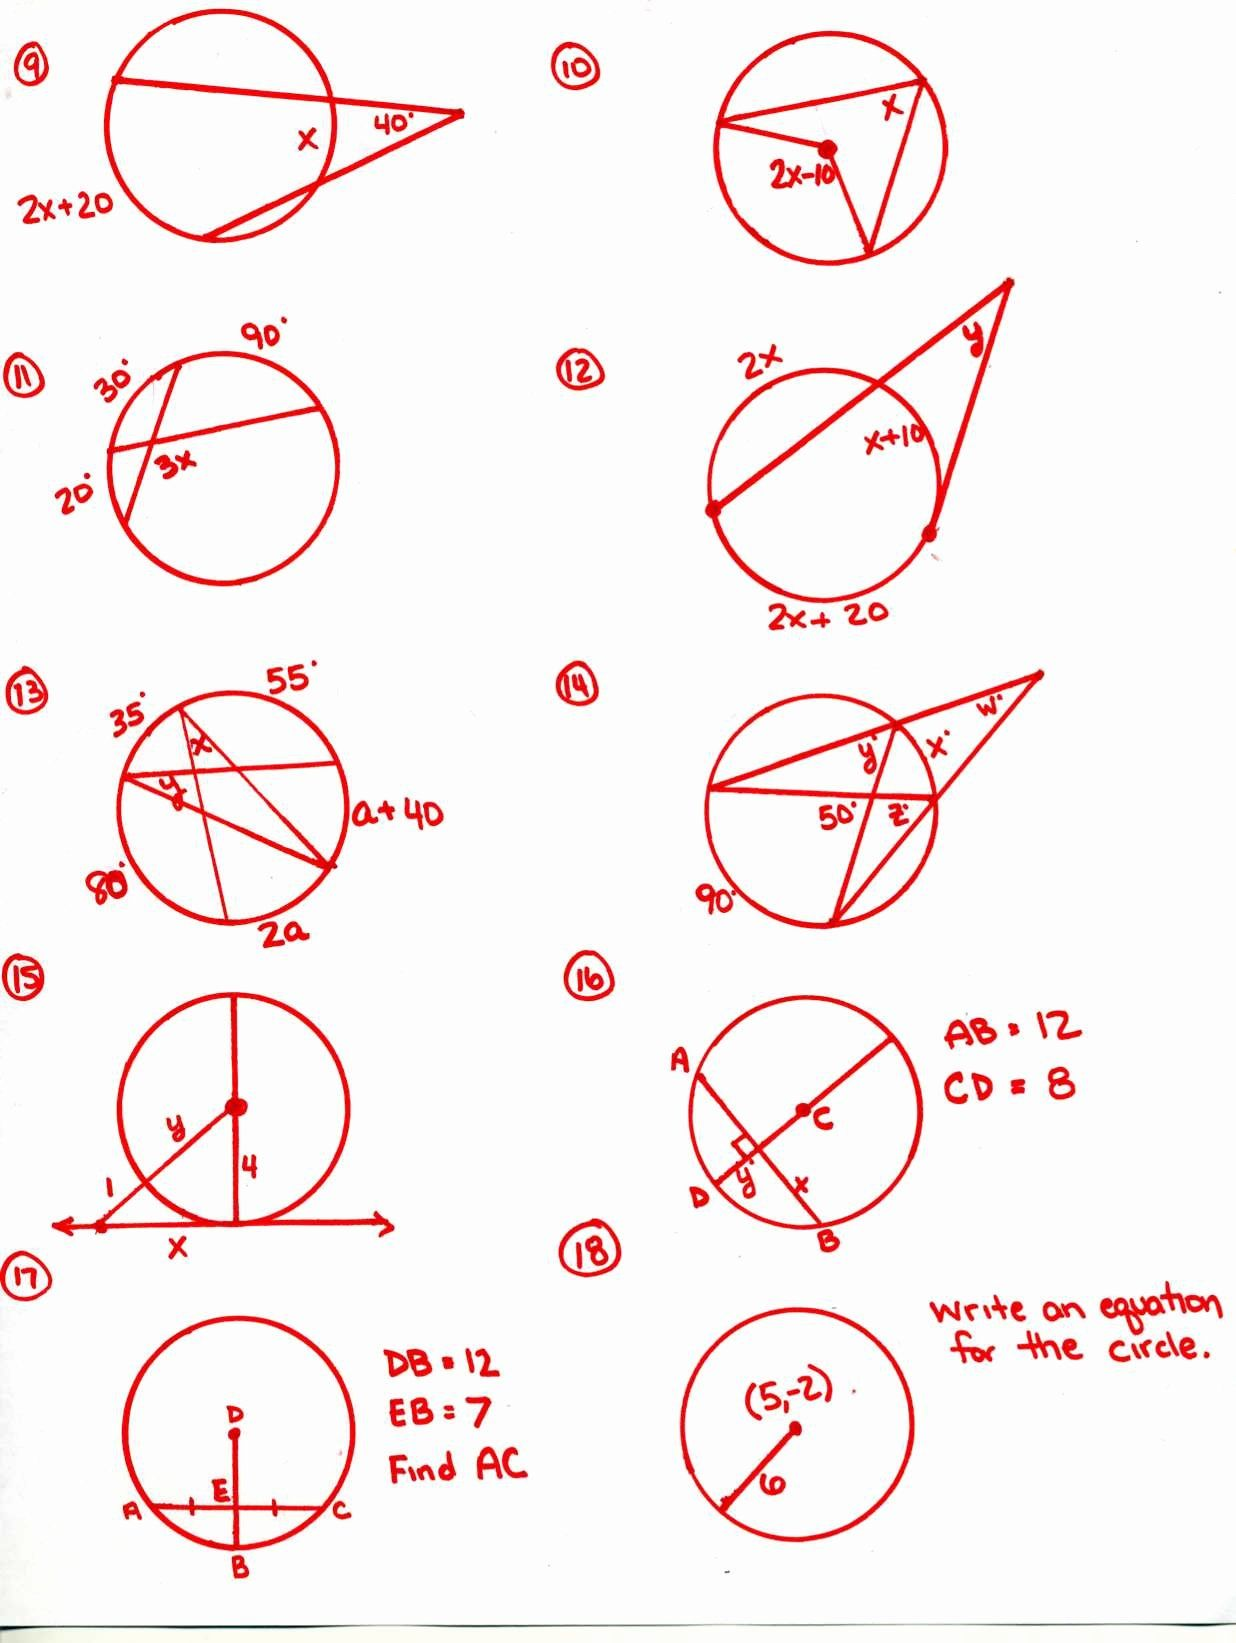 medium resolution of Angles In A Circle Worksheet Lovely Circle theorems Match Up by Debbs  Bridgman – Chessmuseum Template Library   Geometry worksheets